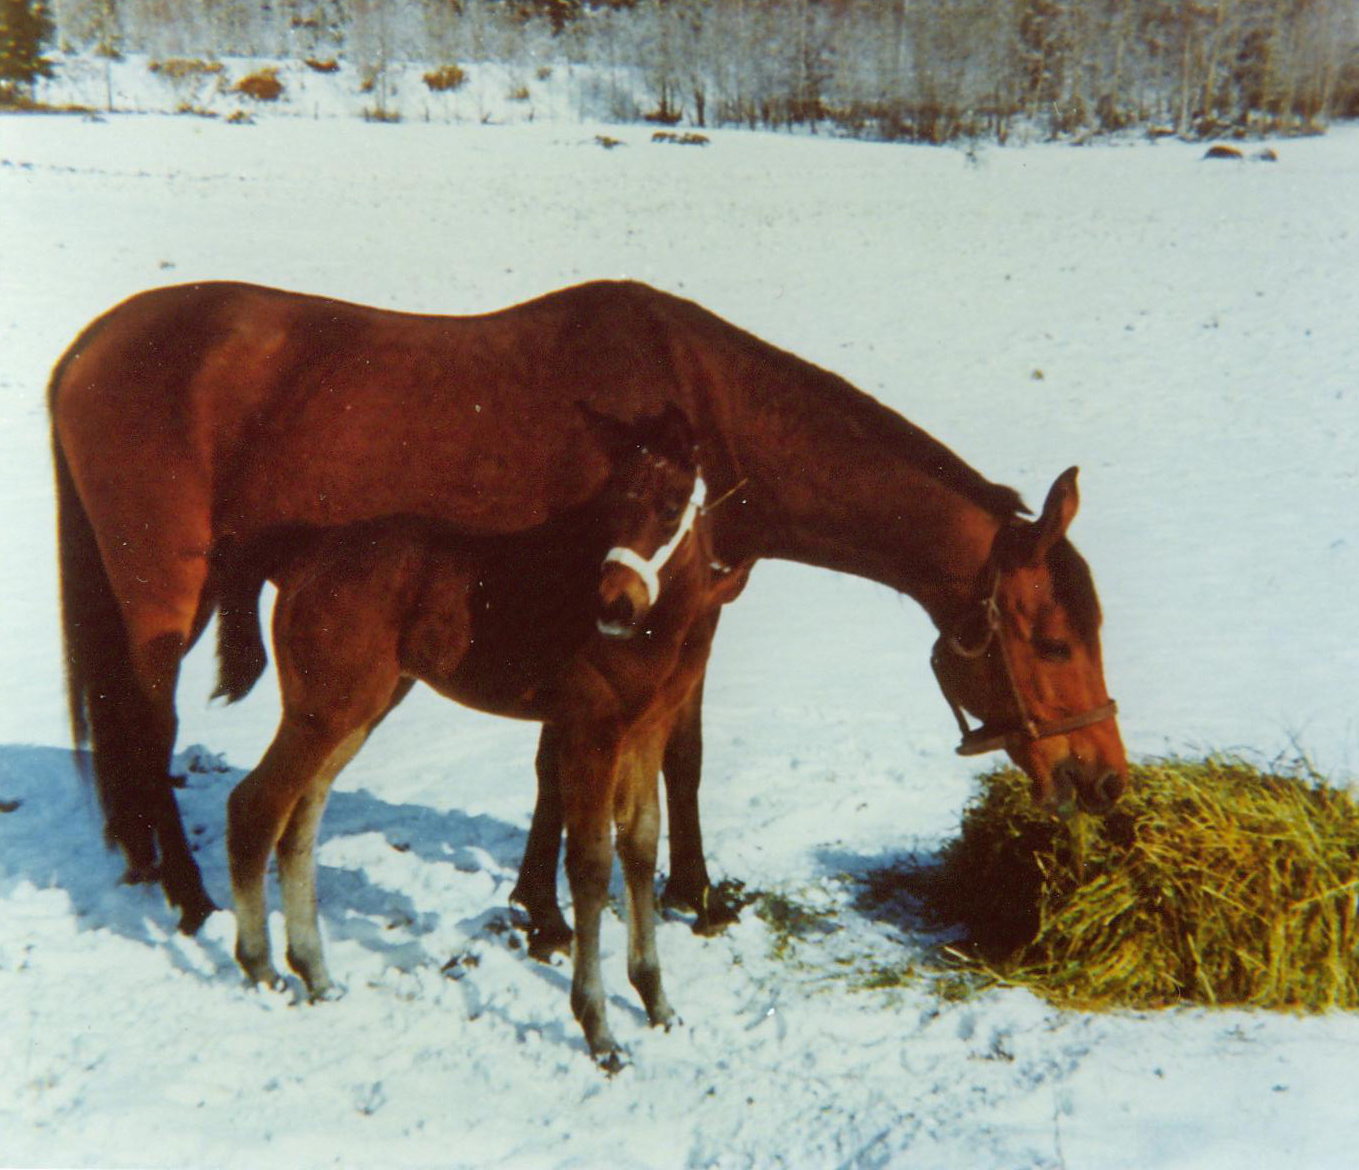 Brita and Rolf Axelsson´s first Arabian mare Edessa (Pietuszok-Ellora/Witraz) and her first born foal at Wilkesbacka - Edjora by Exelsjor. Photo: private